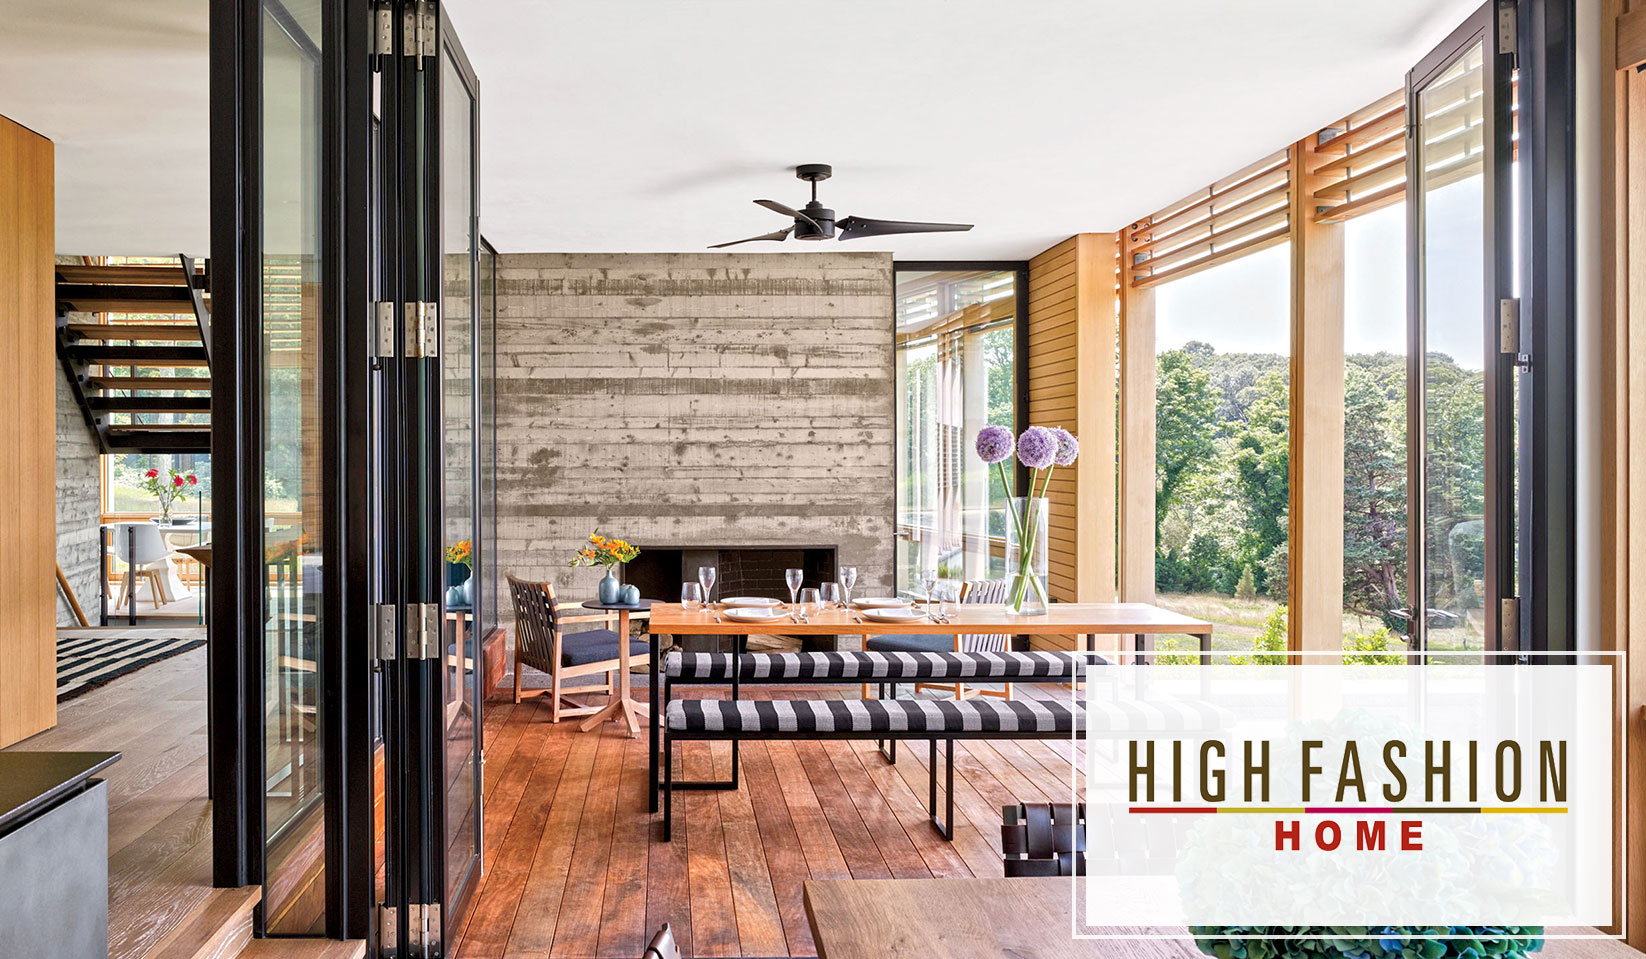 Fullsize Of High Fashion Home